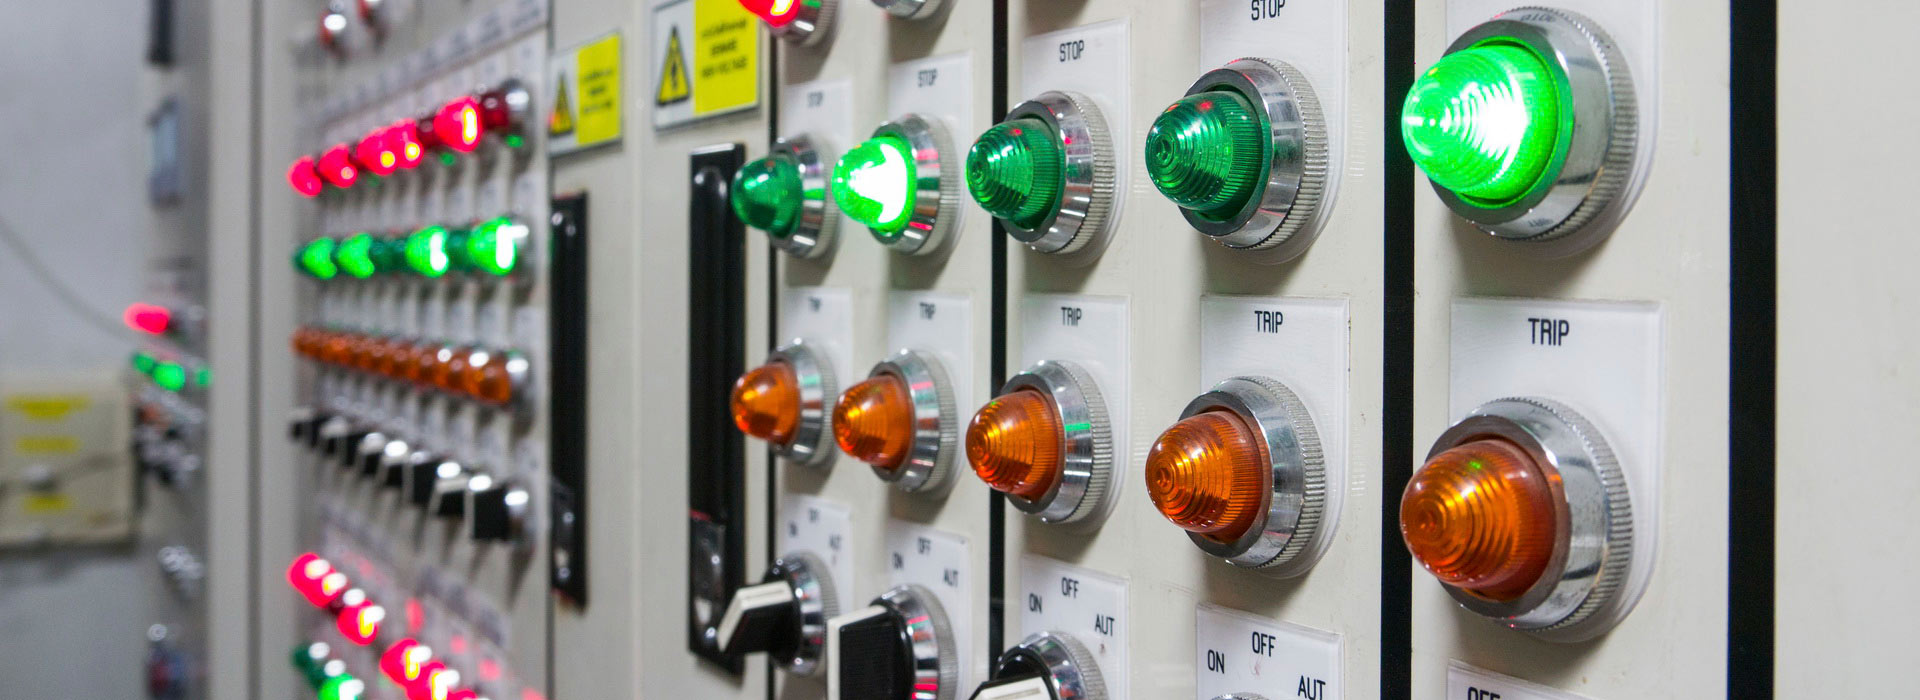 an electrical control panel